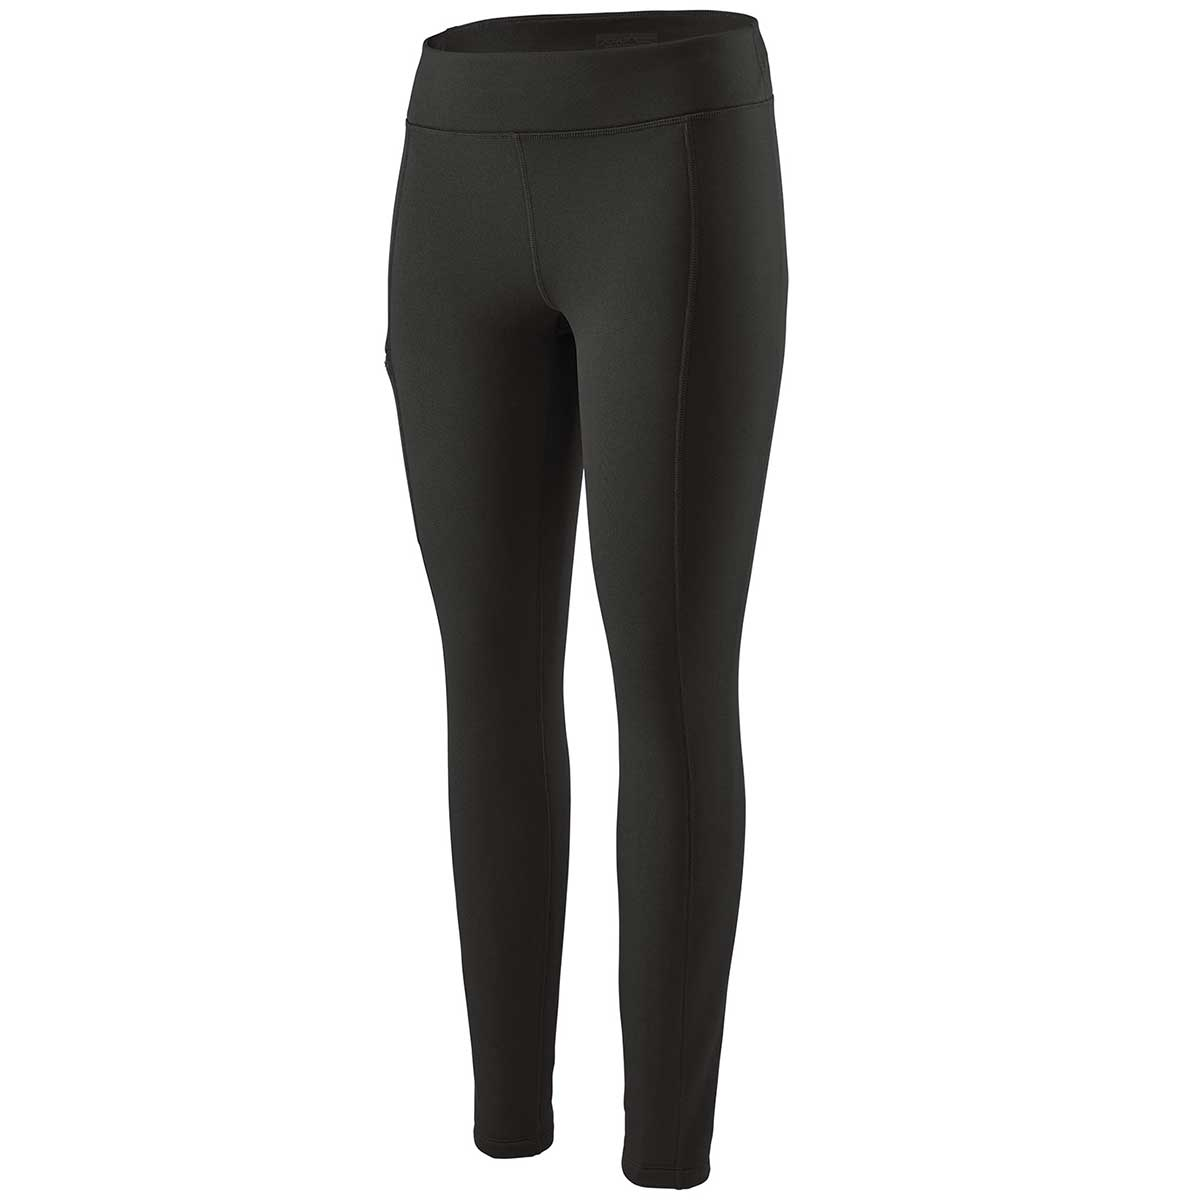 Patagonia women's Crosstrek Bottoms in Black front view